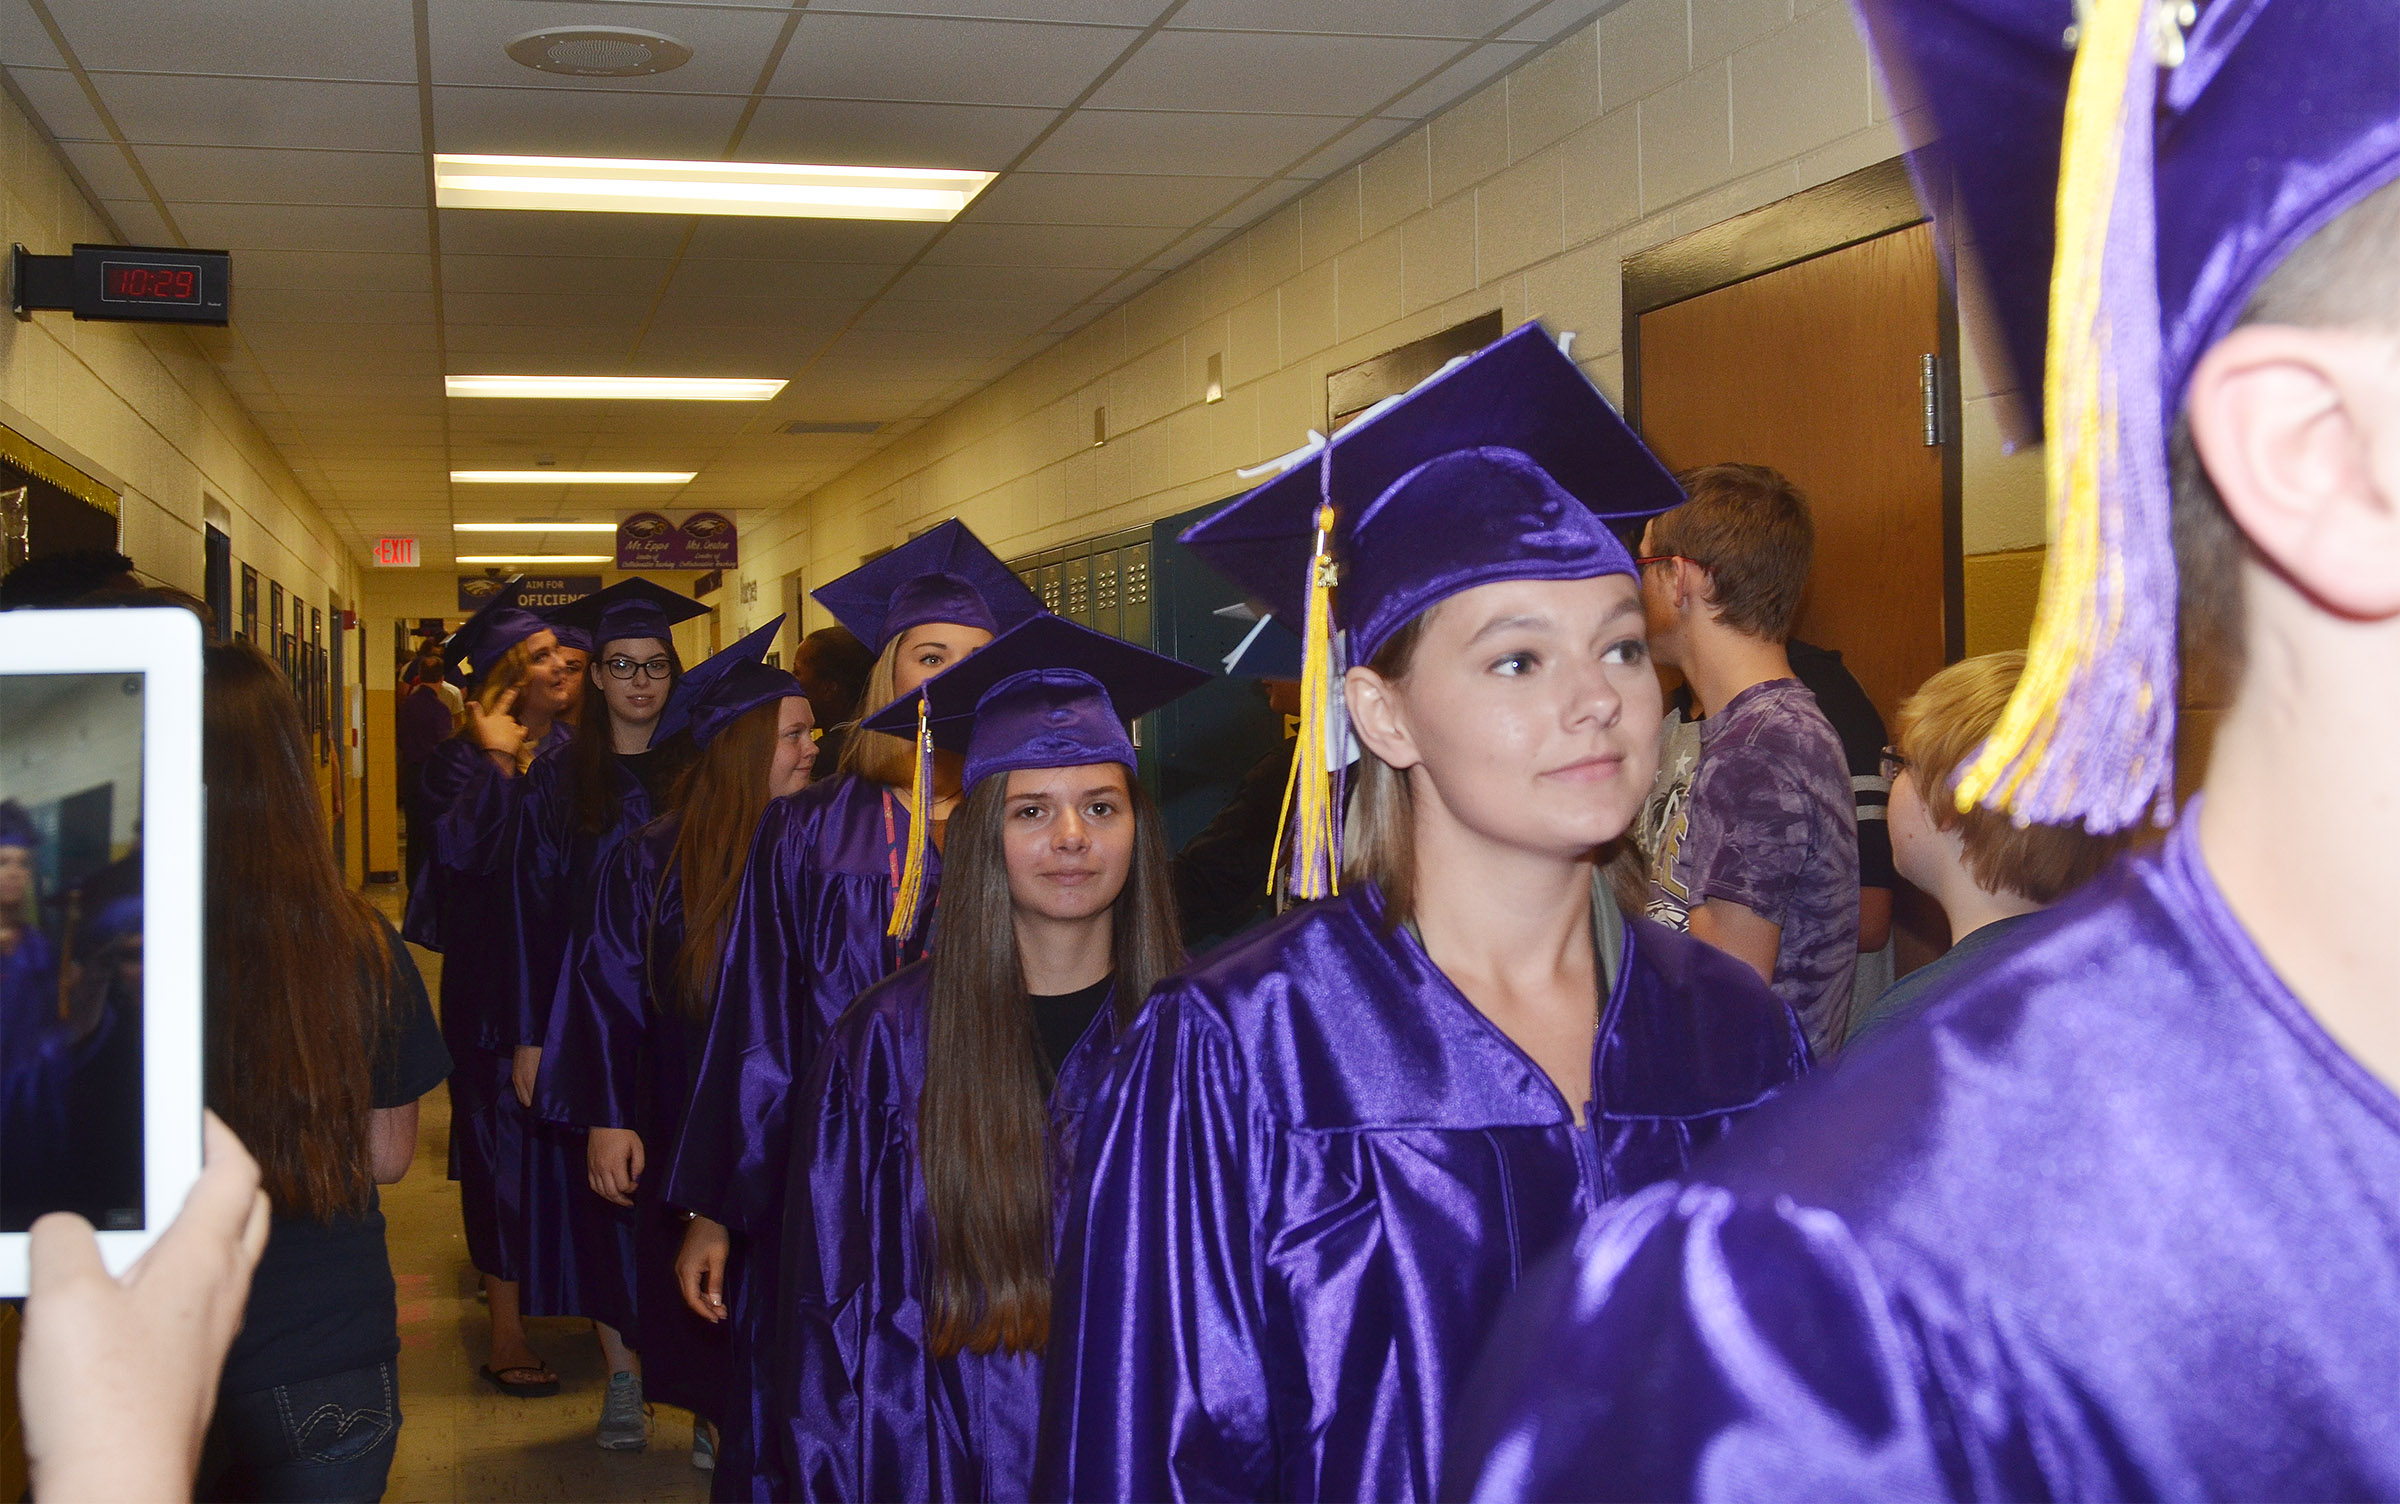 CHS senior Shauna Jones, at left, and Kyrsten Hill walk down the CHS hallways with their classmates.